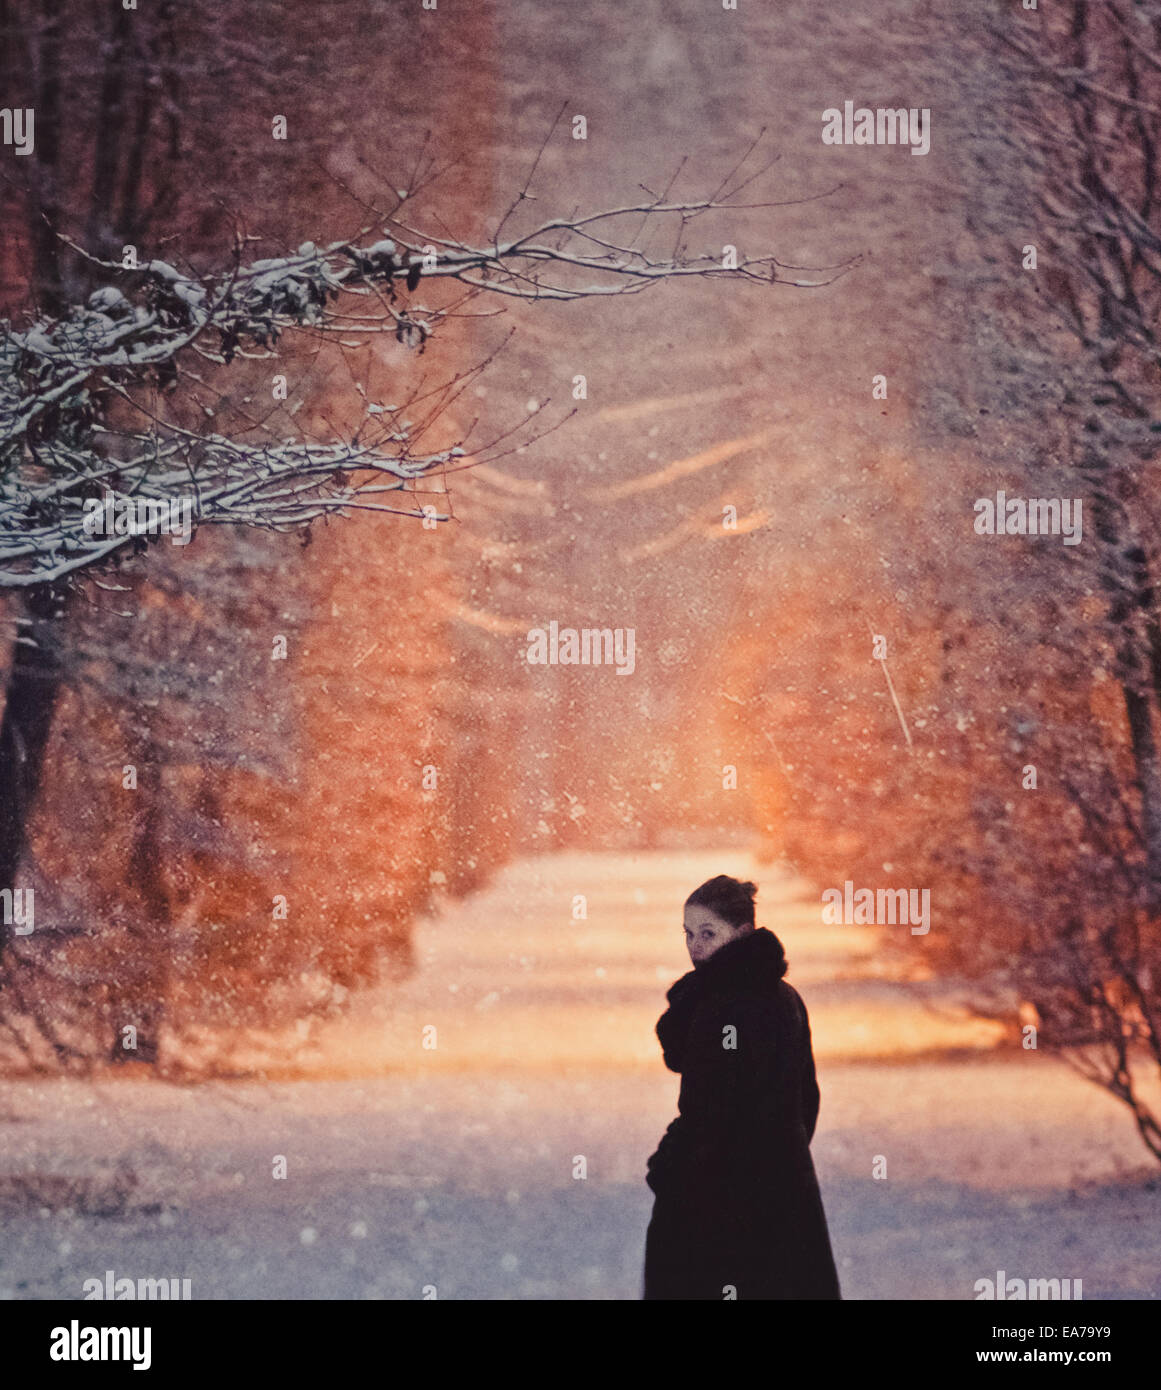 a stroll in a snowy park - Stock Image